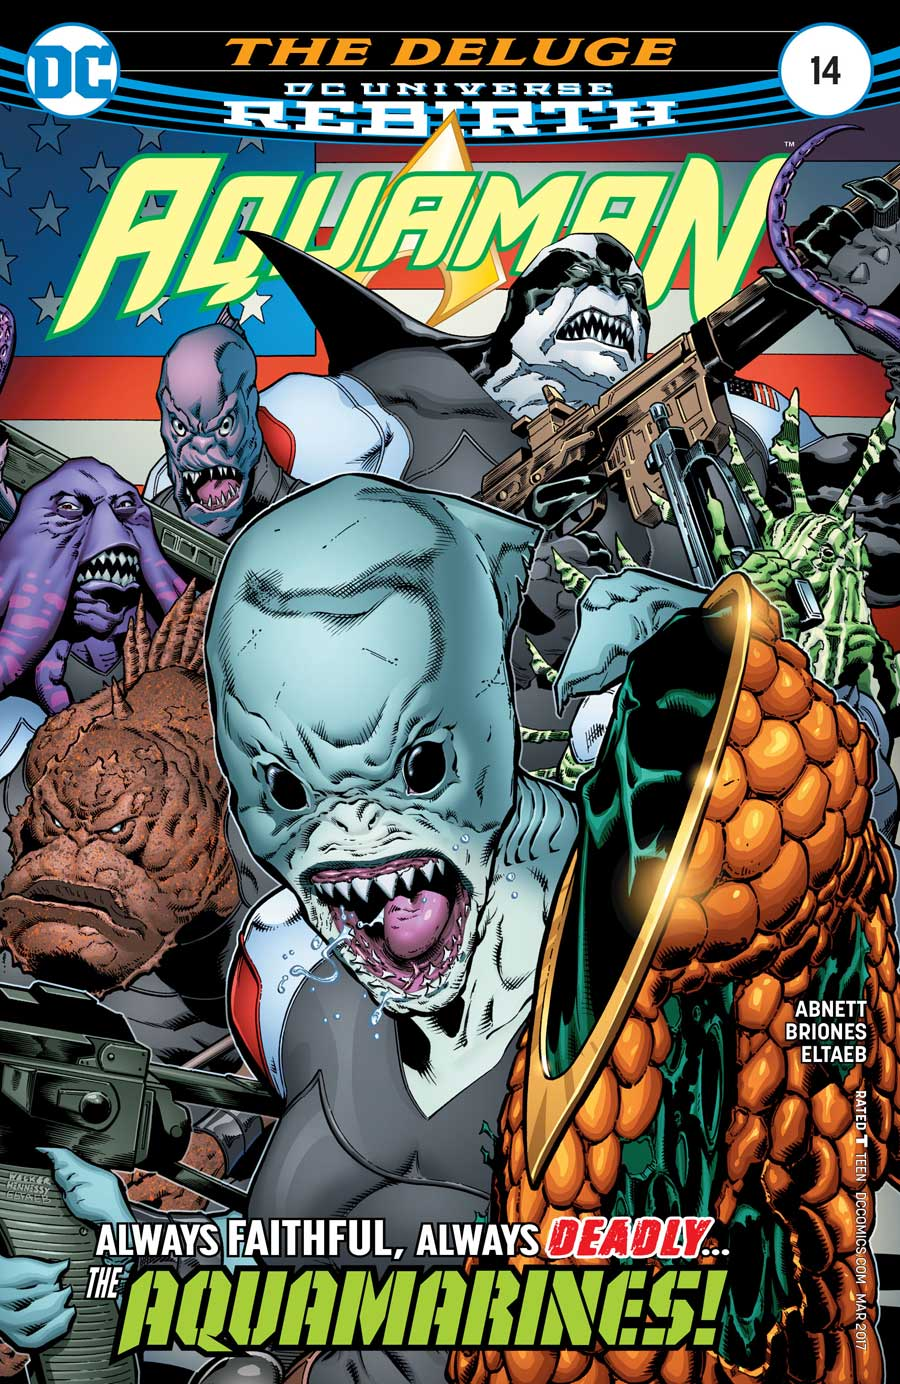 AQUAMAN #14 by Dan Abnett and Philippe Briones